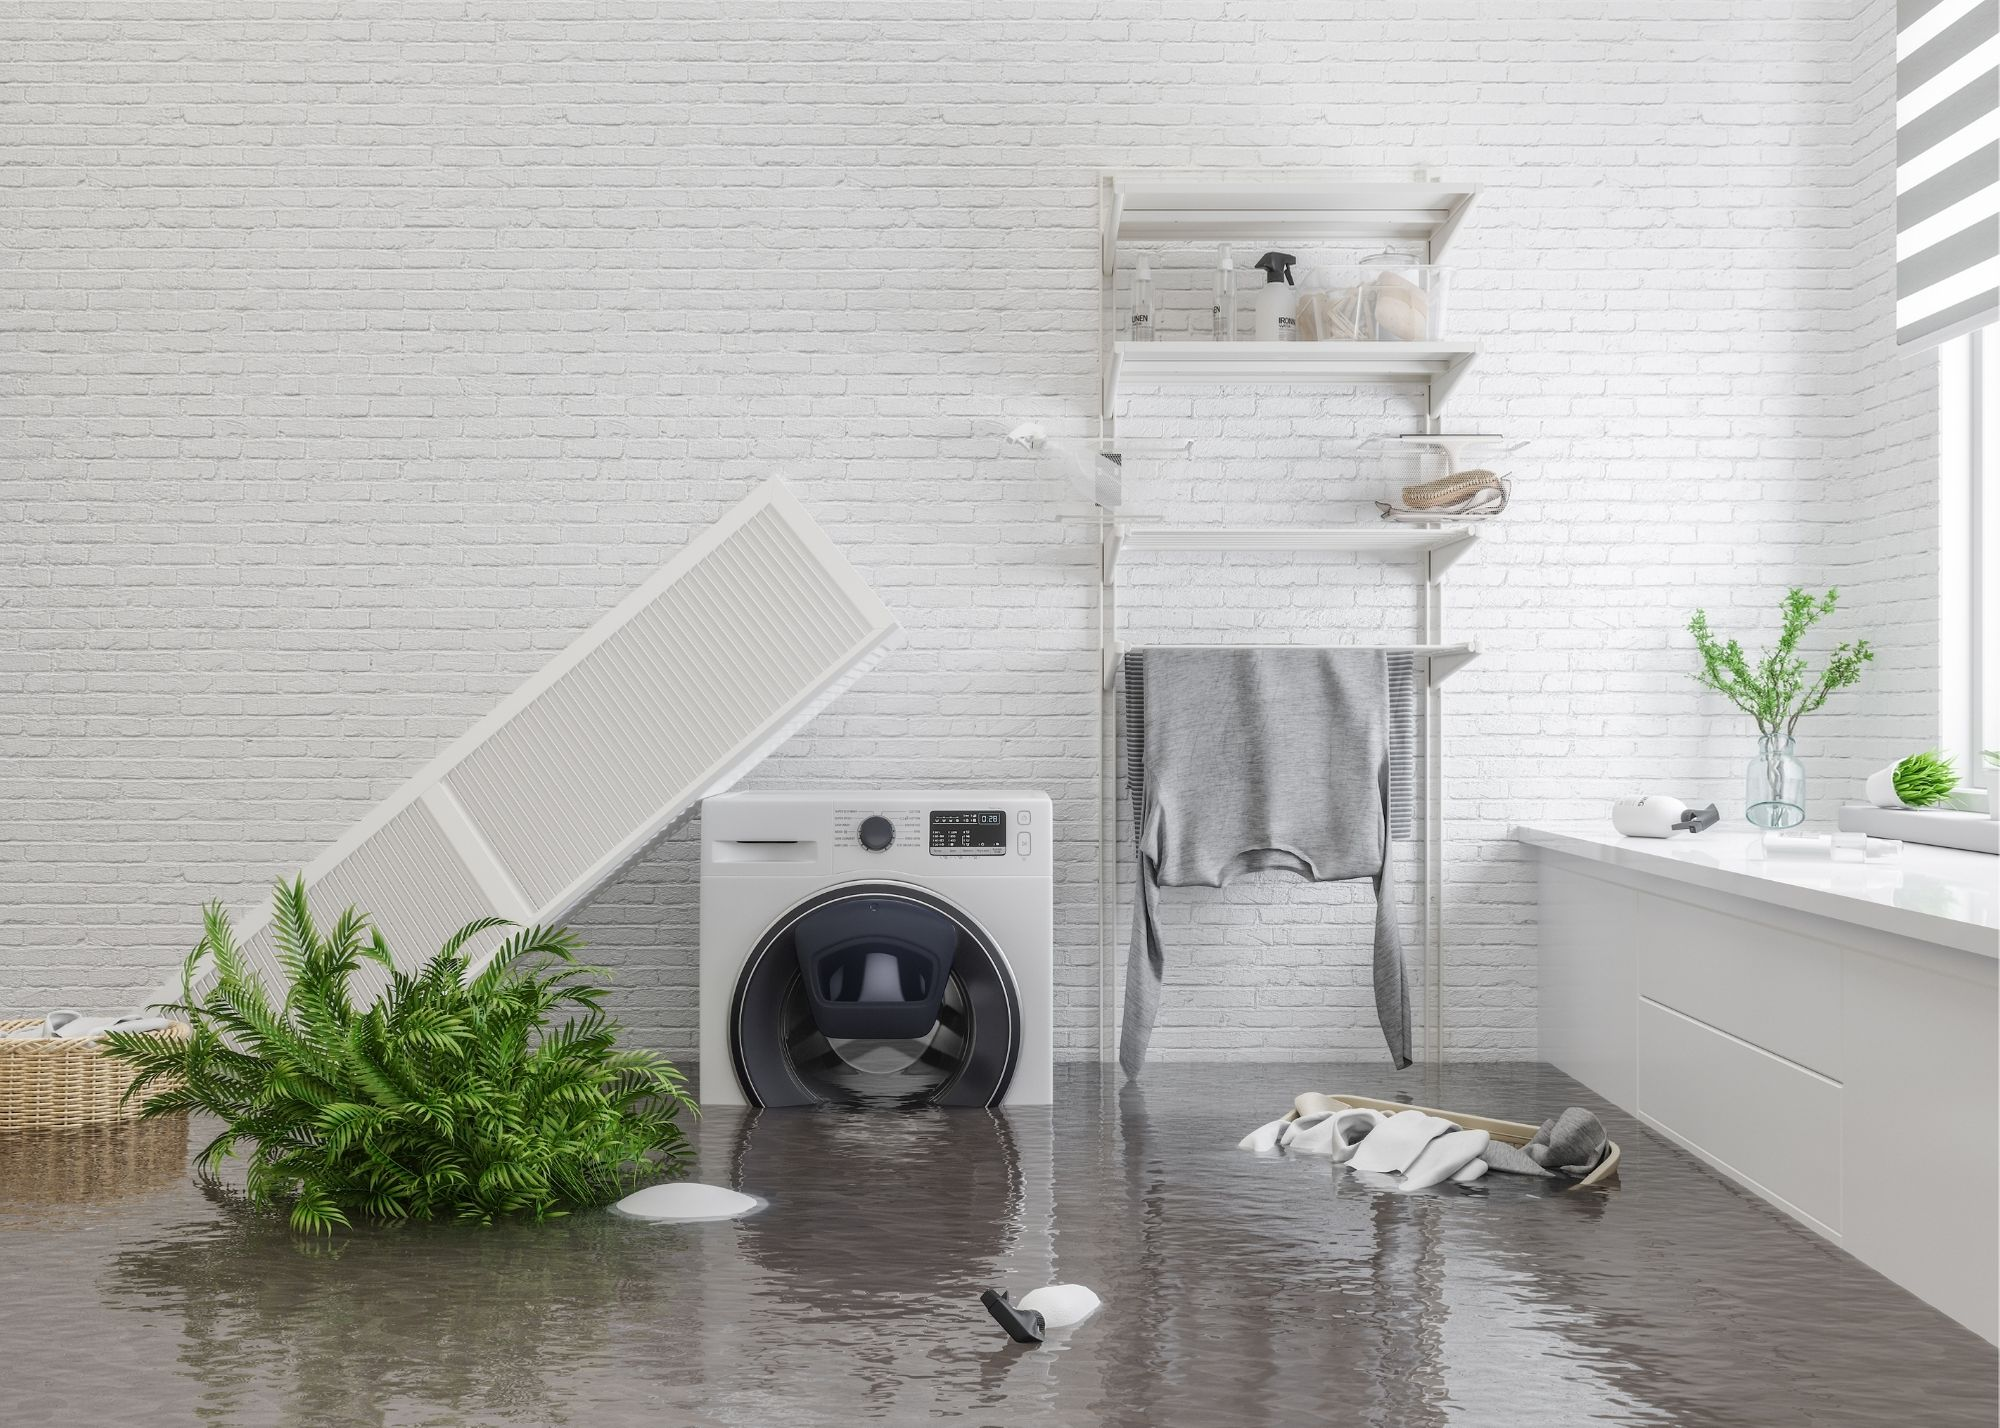 Water Damage Experts of Costa Mesa